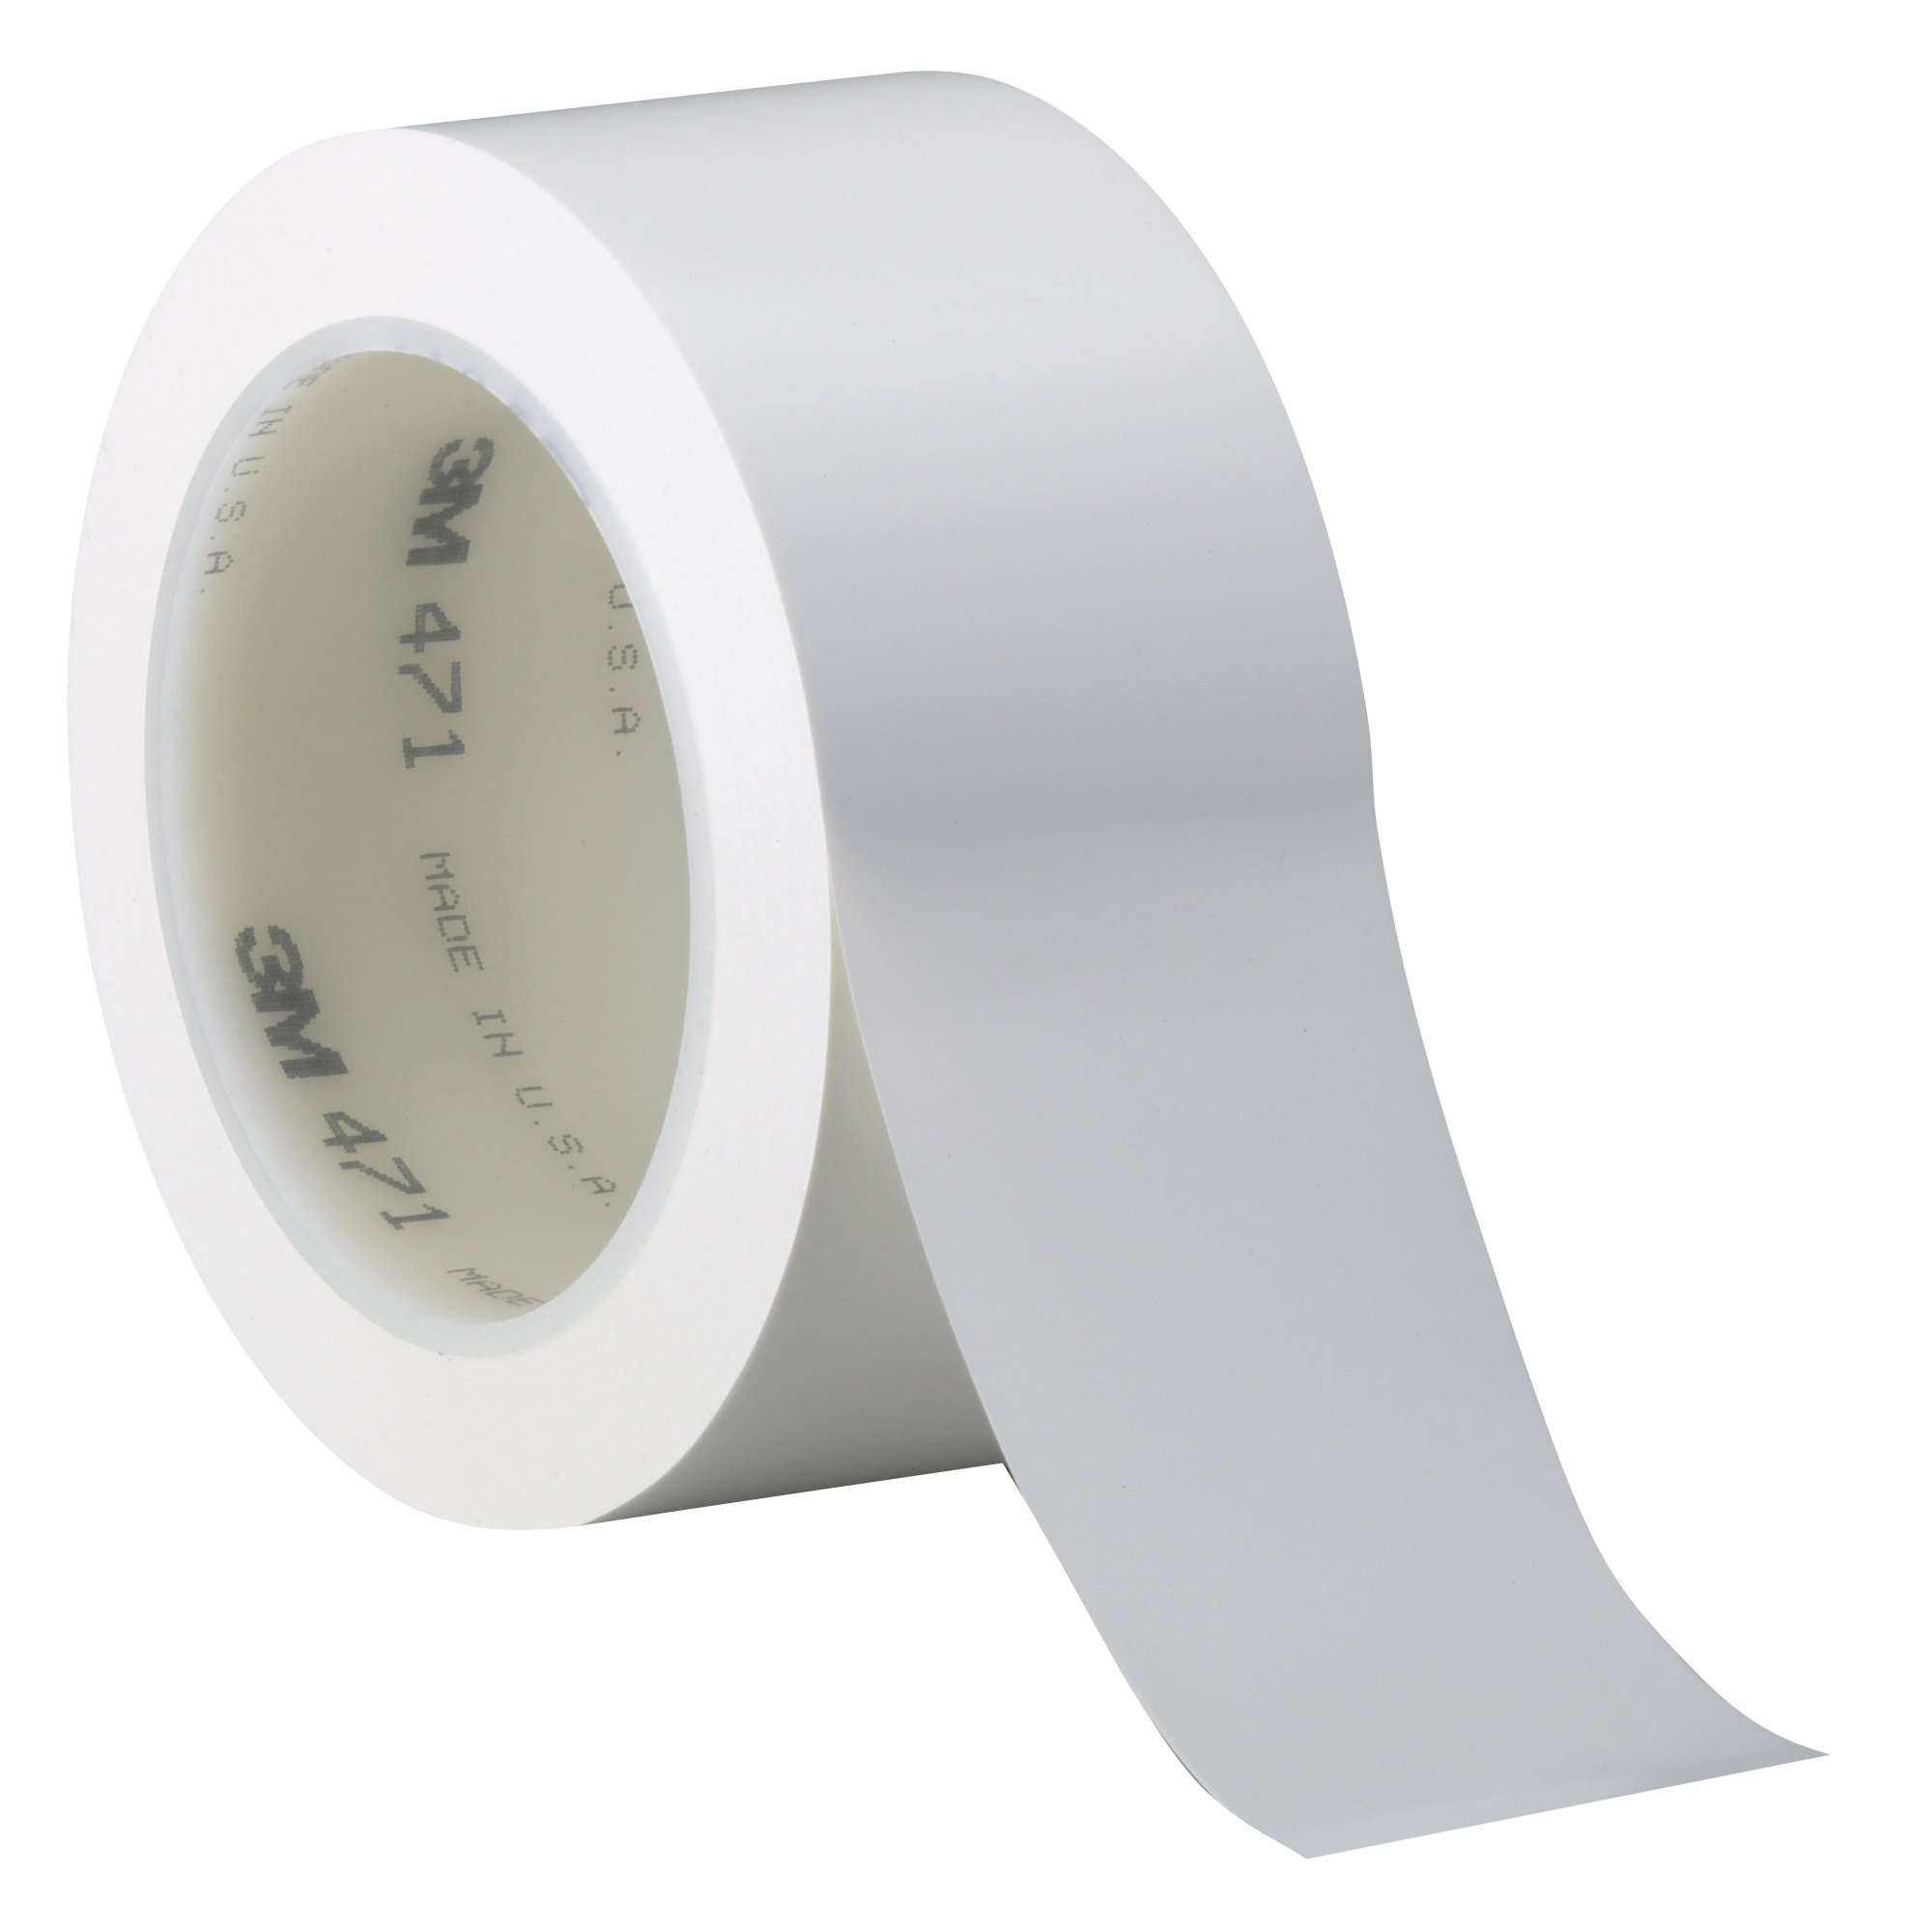 3M Vinyl Tape 471 White, 4 in x 36 yd, Conveniently Packaged